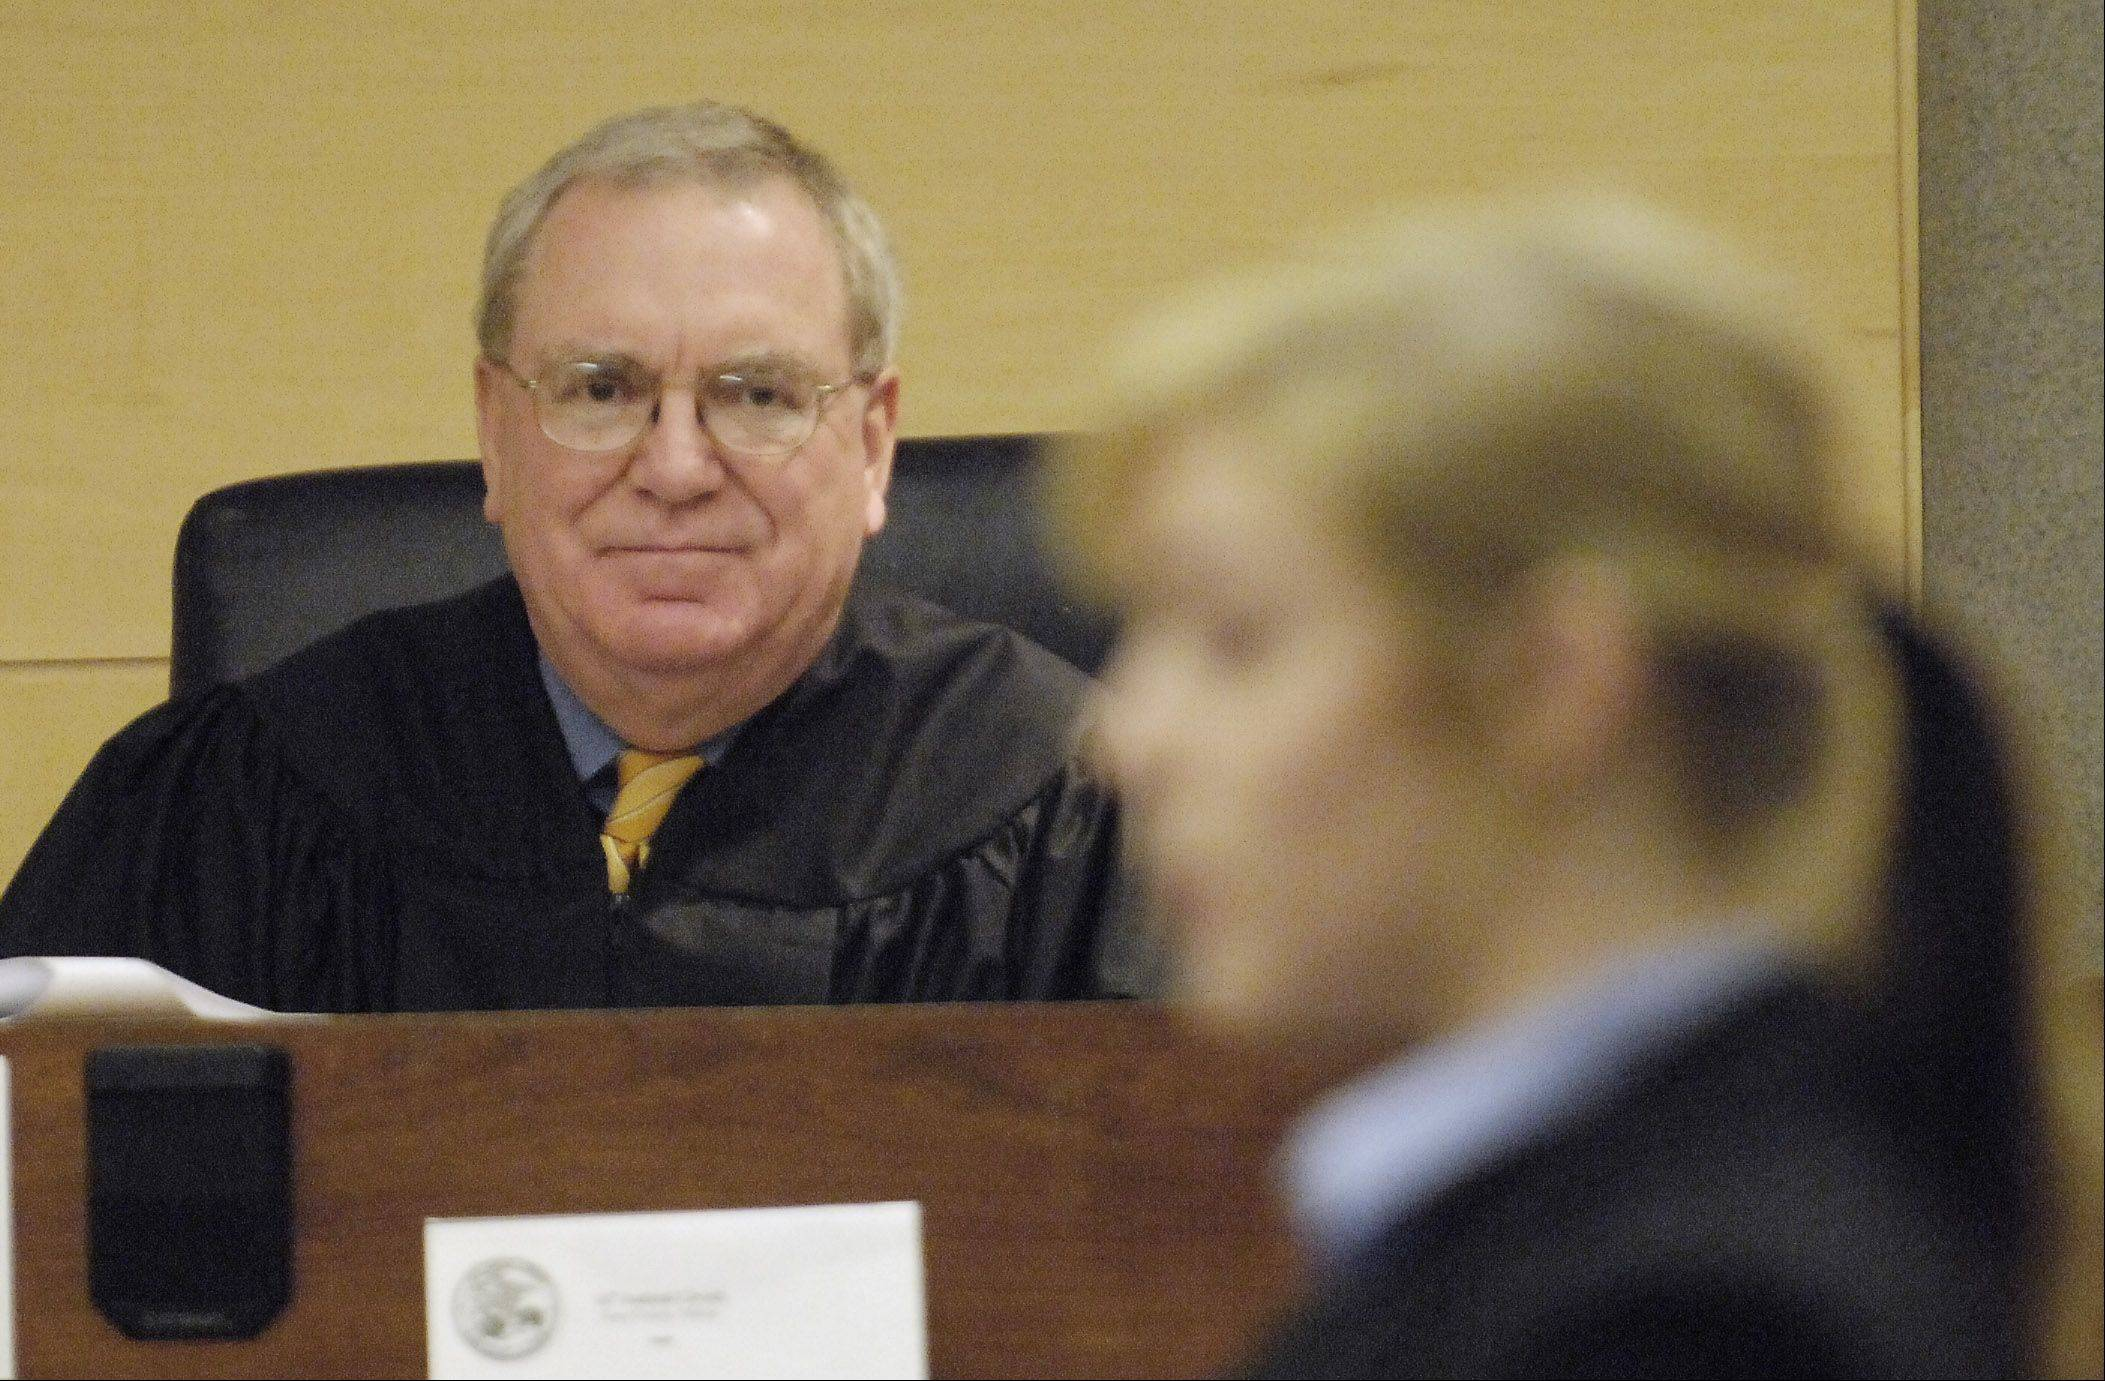 Judge Allen Anderson, presiding over a mock trial at the Kane County Judicial Center, said he will retire at the end of the year.